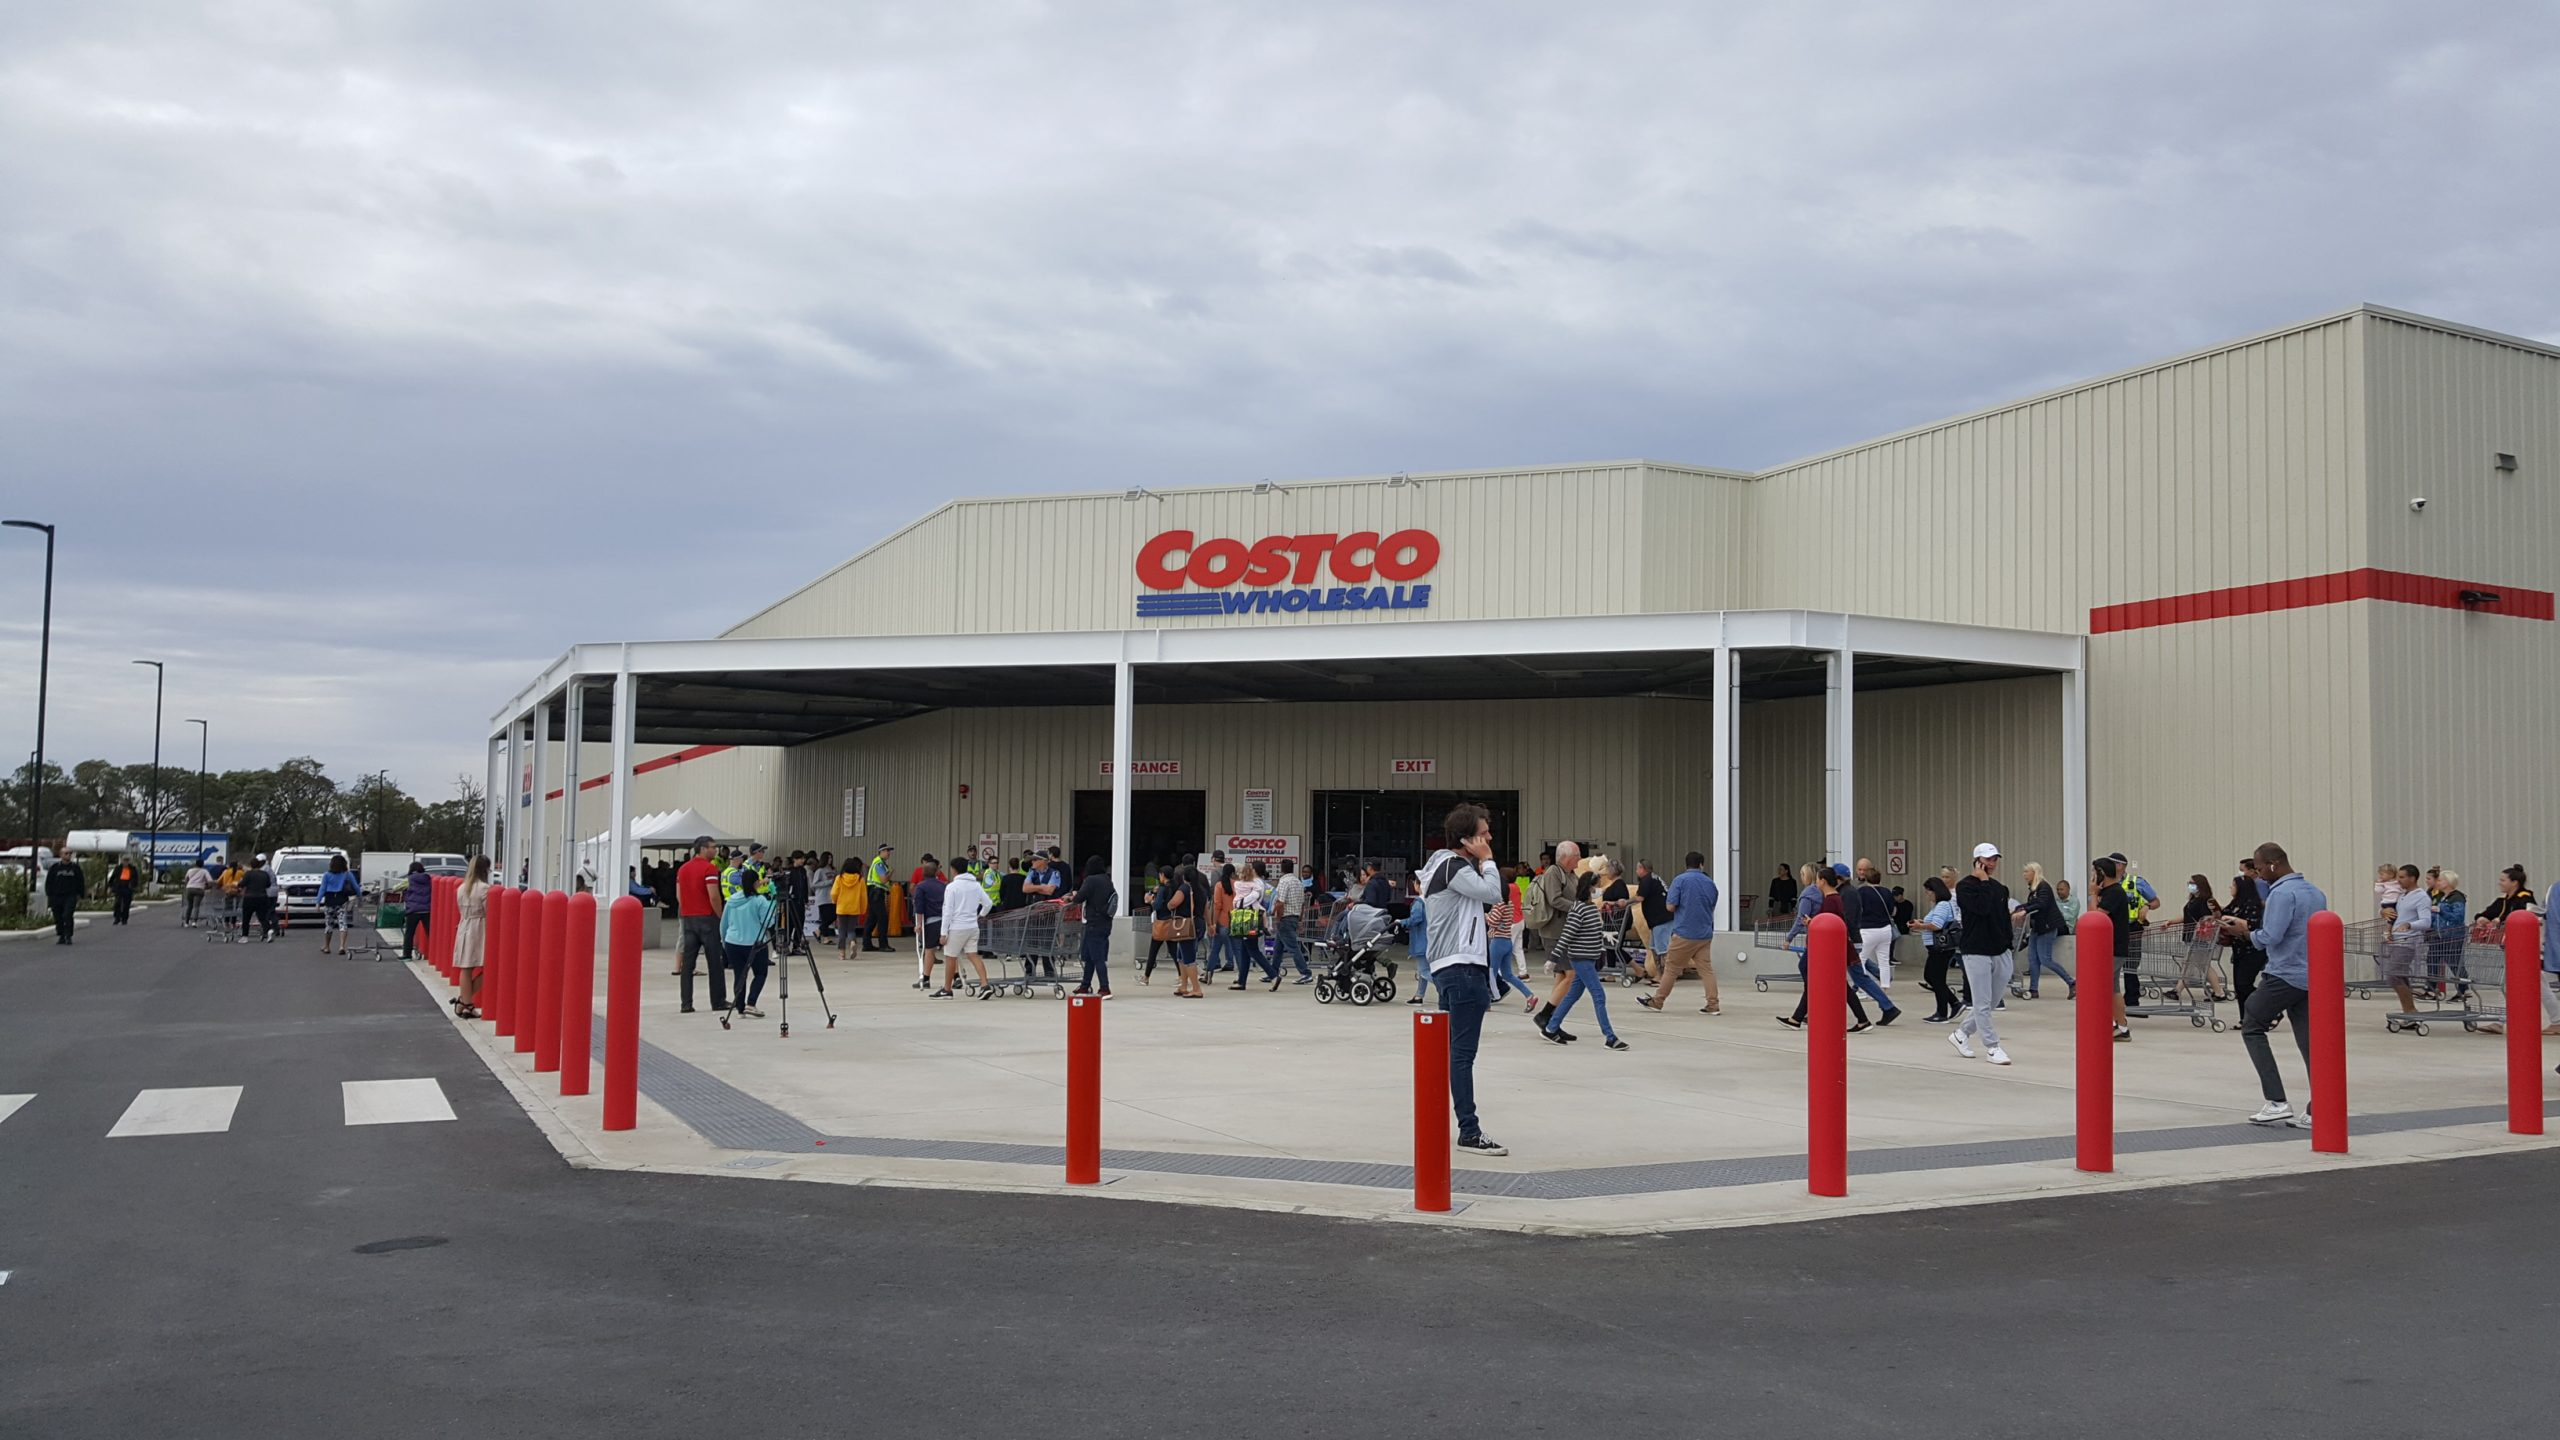 costco with people outside